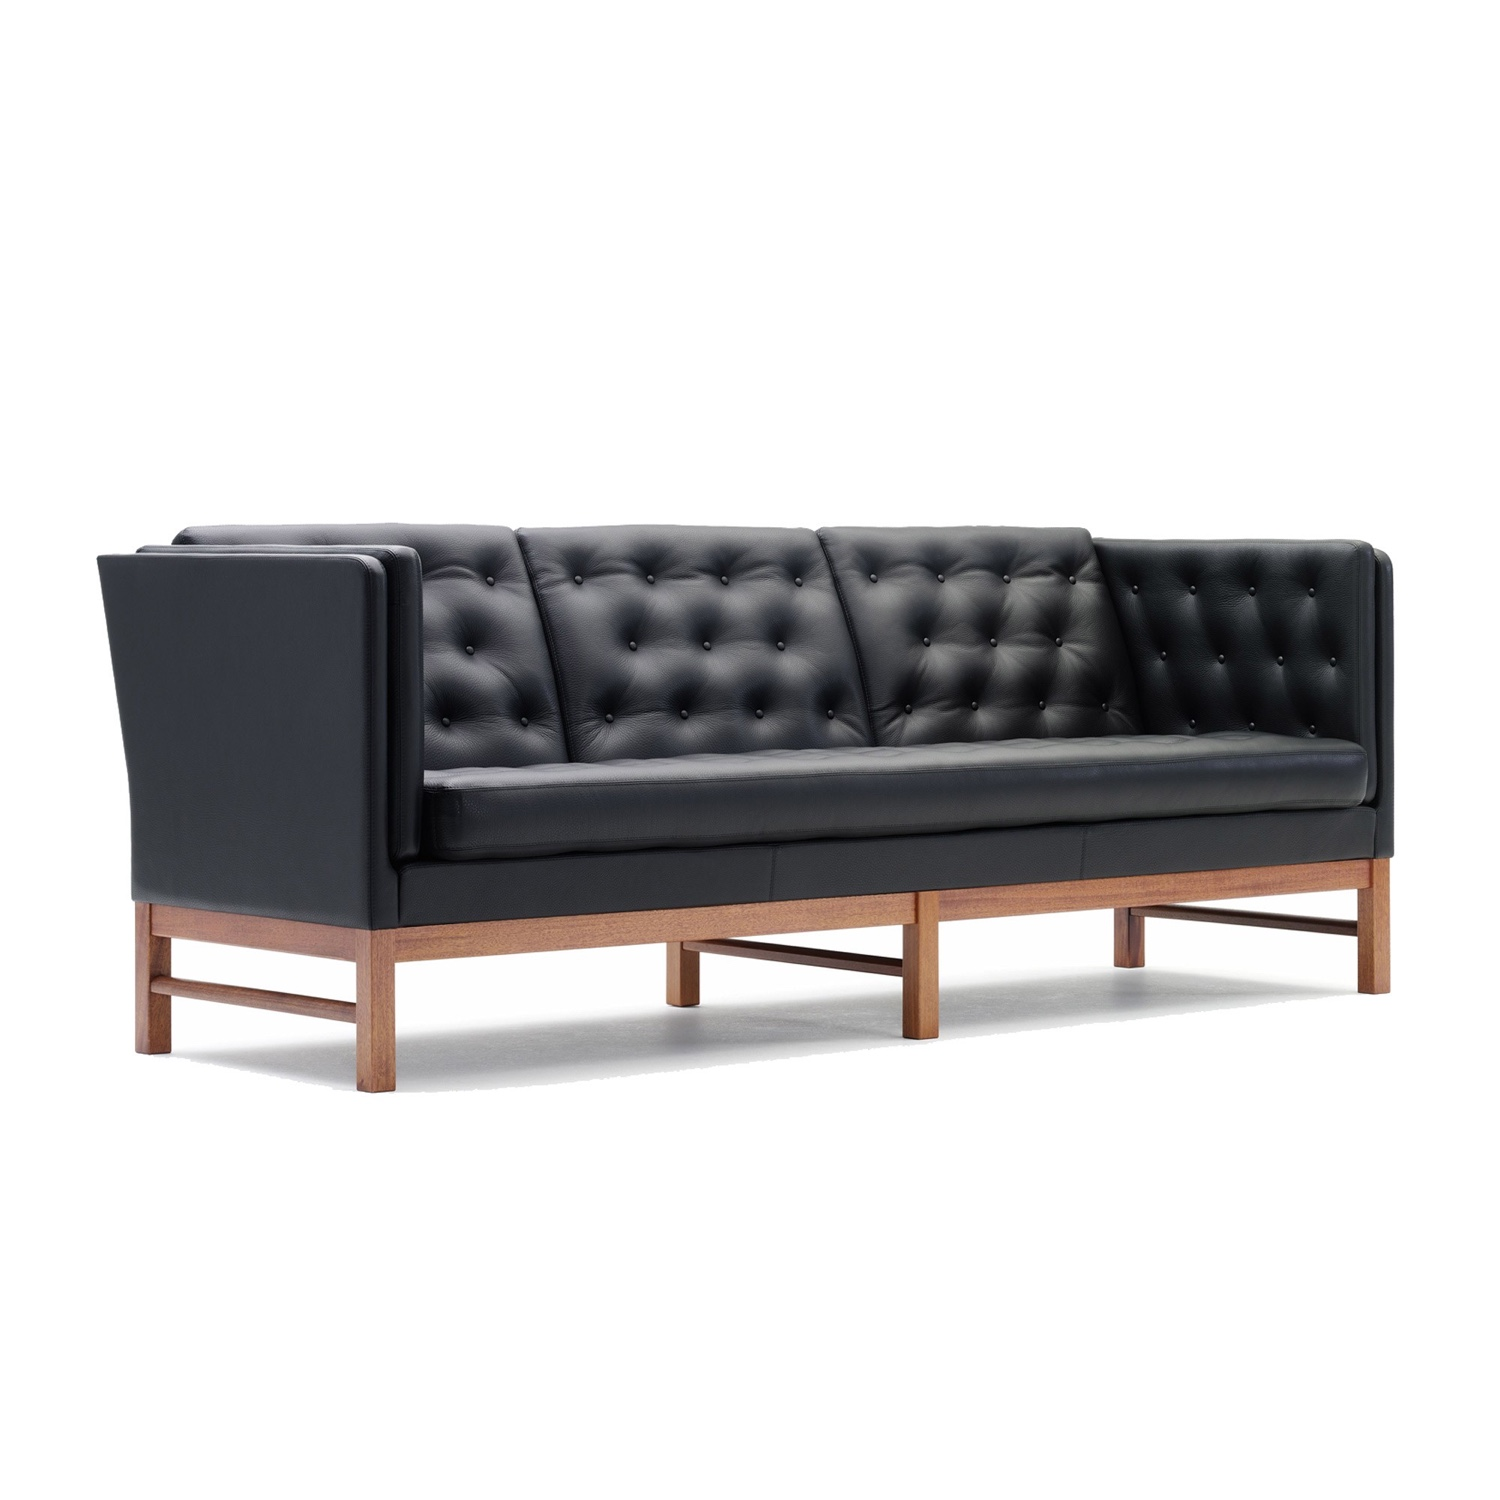 EJ 315 sofa leather